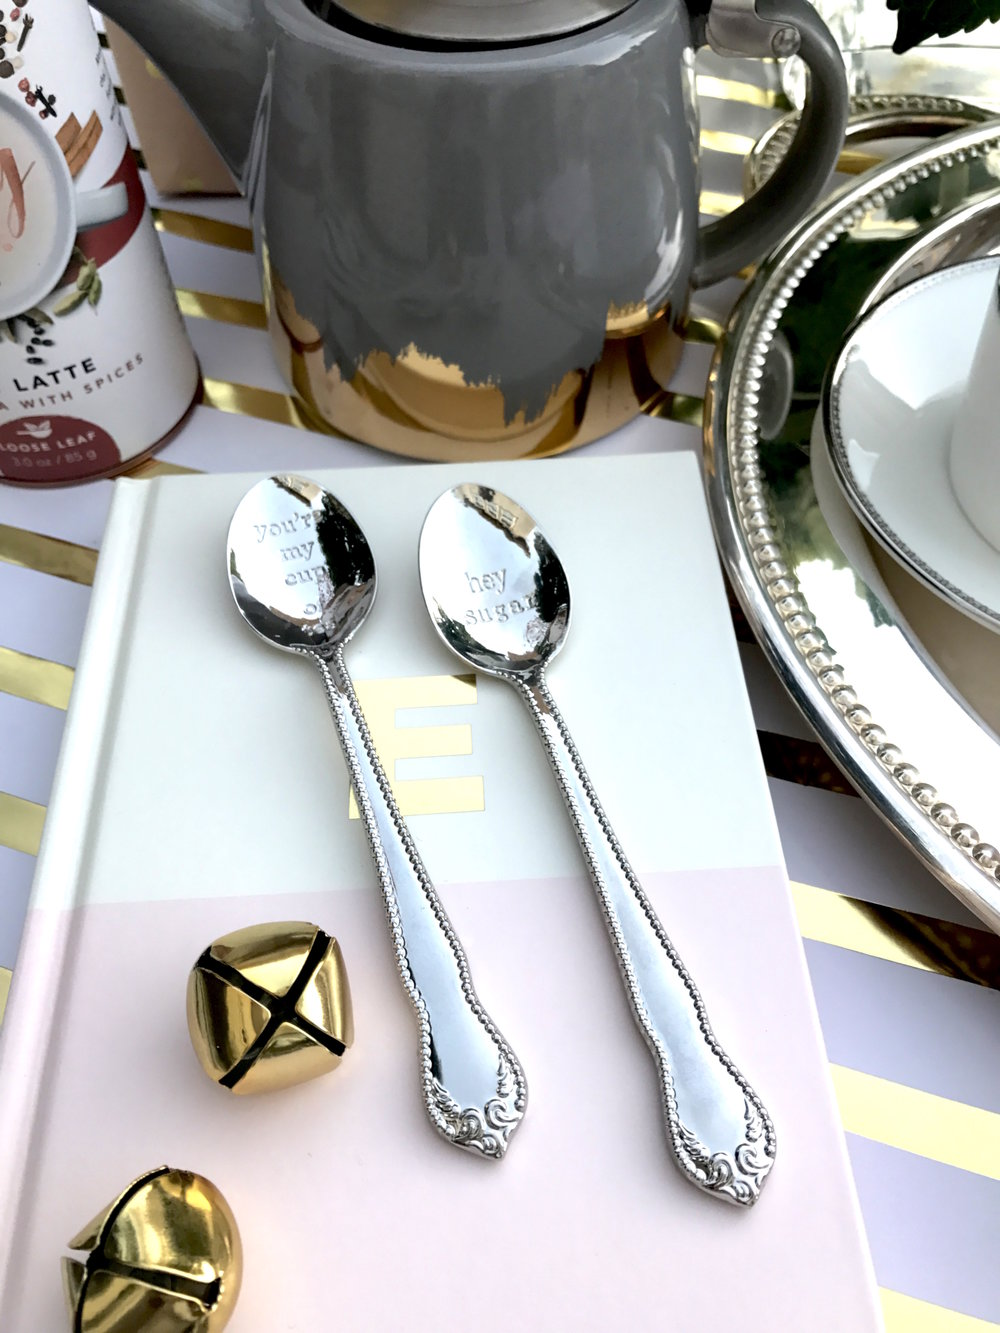 Hostess Gifts - Sugar spoons